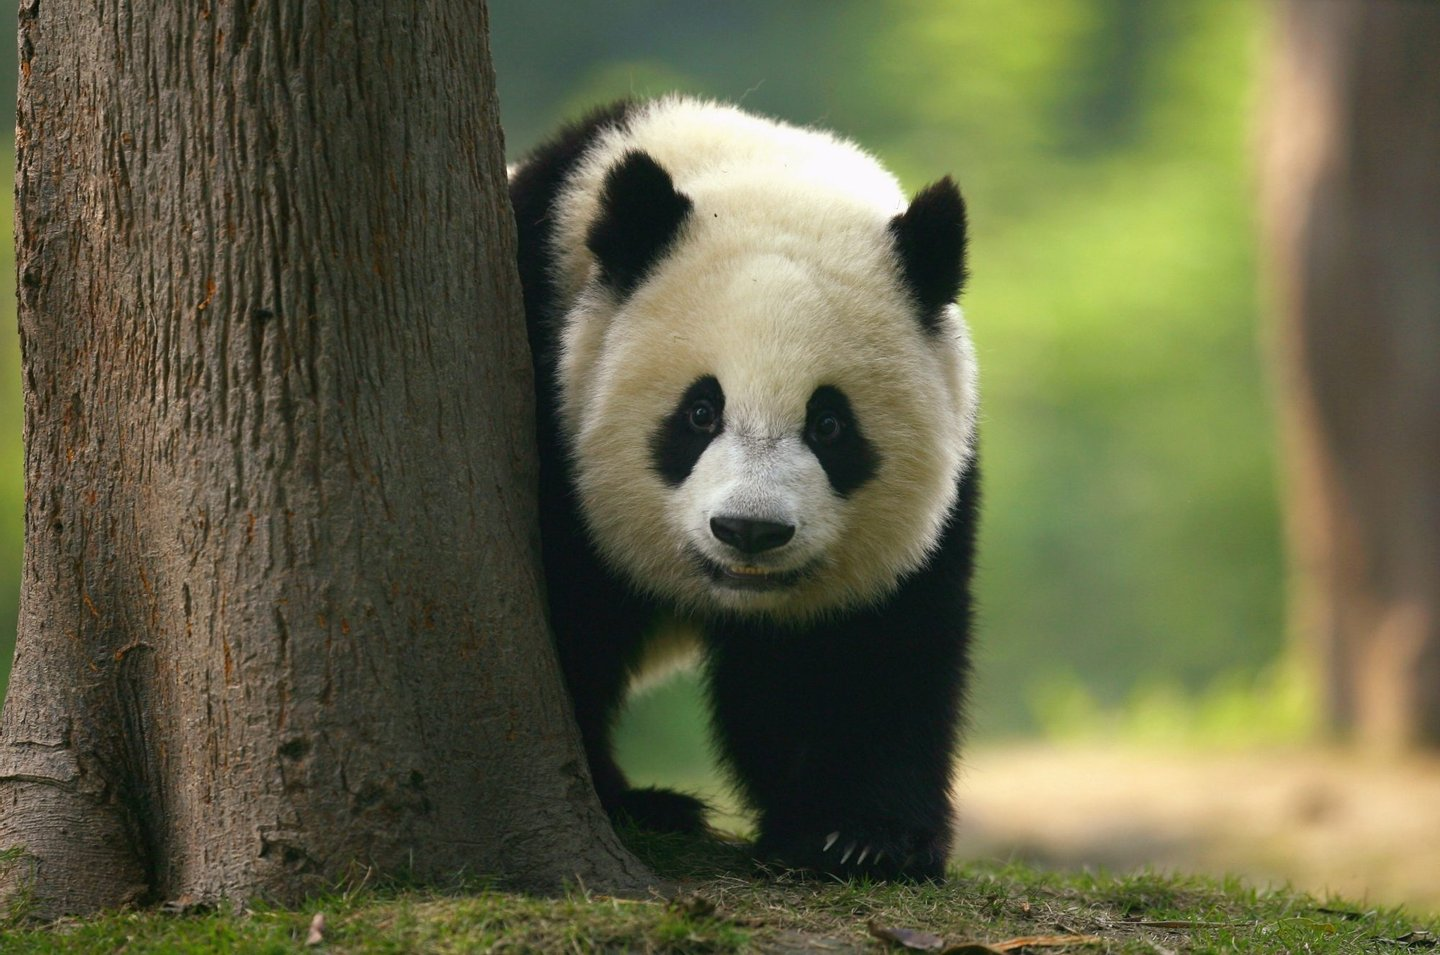 CHENGDU, CHINA - SEPTEMBER 19: A Giant Panda cub is seen on show at China's largest breeding Programme at Chengdu Research Base Of Giant Panda Breeding on September 19, 2007 in Chengdu, China. Chengdu Research Base of Giant Panda Breeding is dedicated to the conservation of native Chinese endangered species including the giant panda and red panda at its 105 hectacre site. (Photo by Paul Gilham/Getty Images)